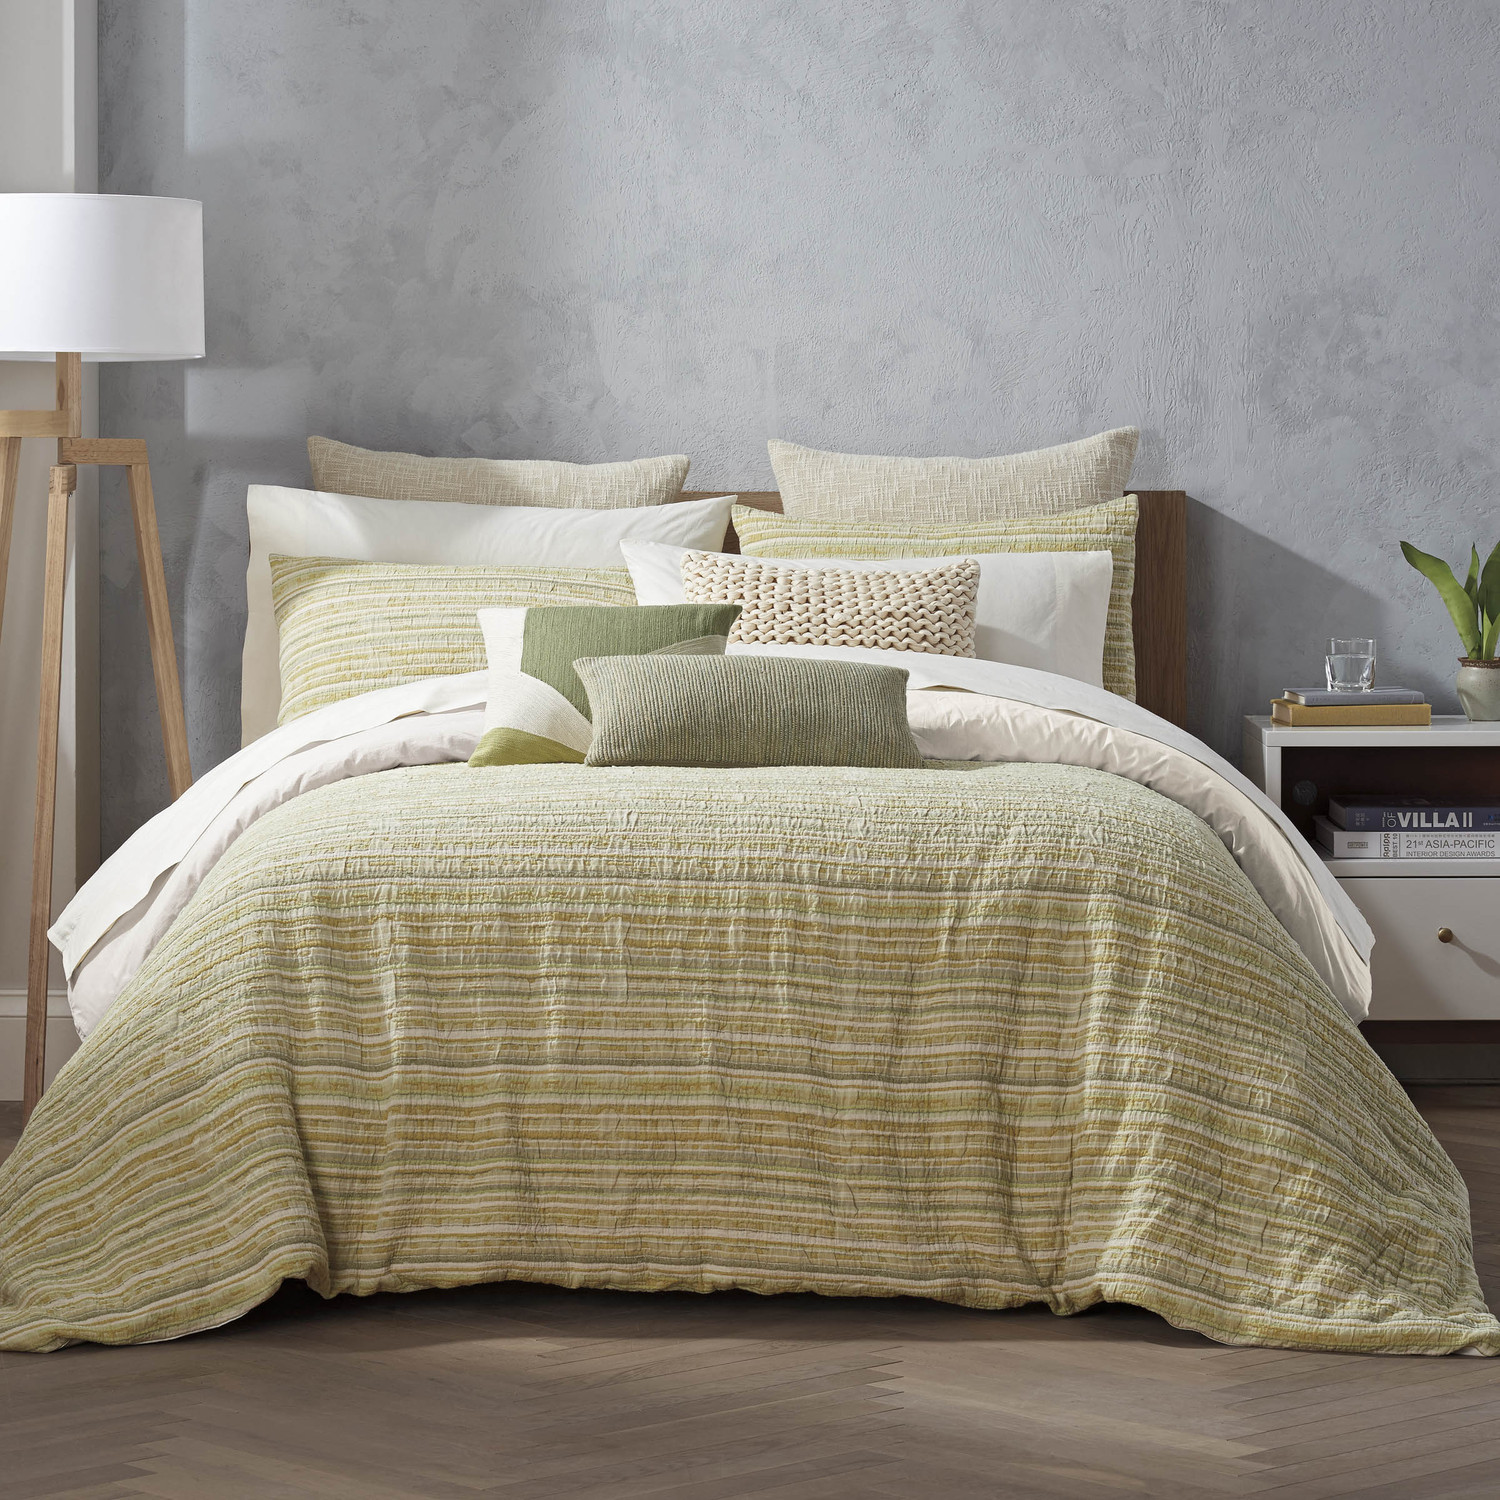 Sequoia Sage by Habit by Highline Bedding Co.